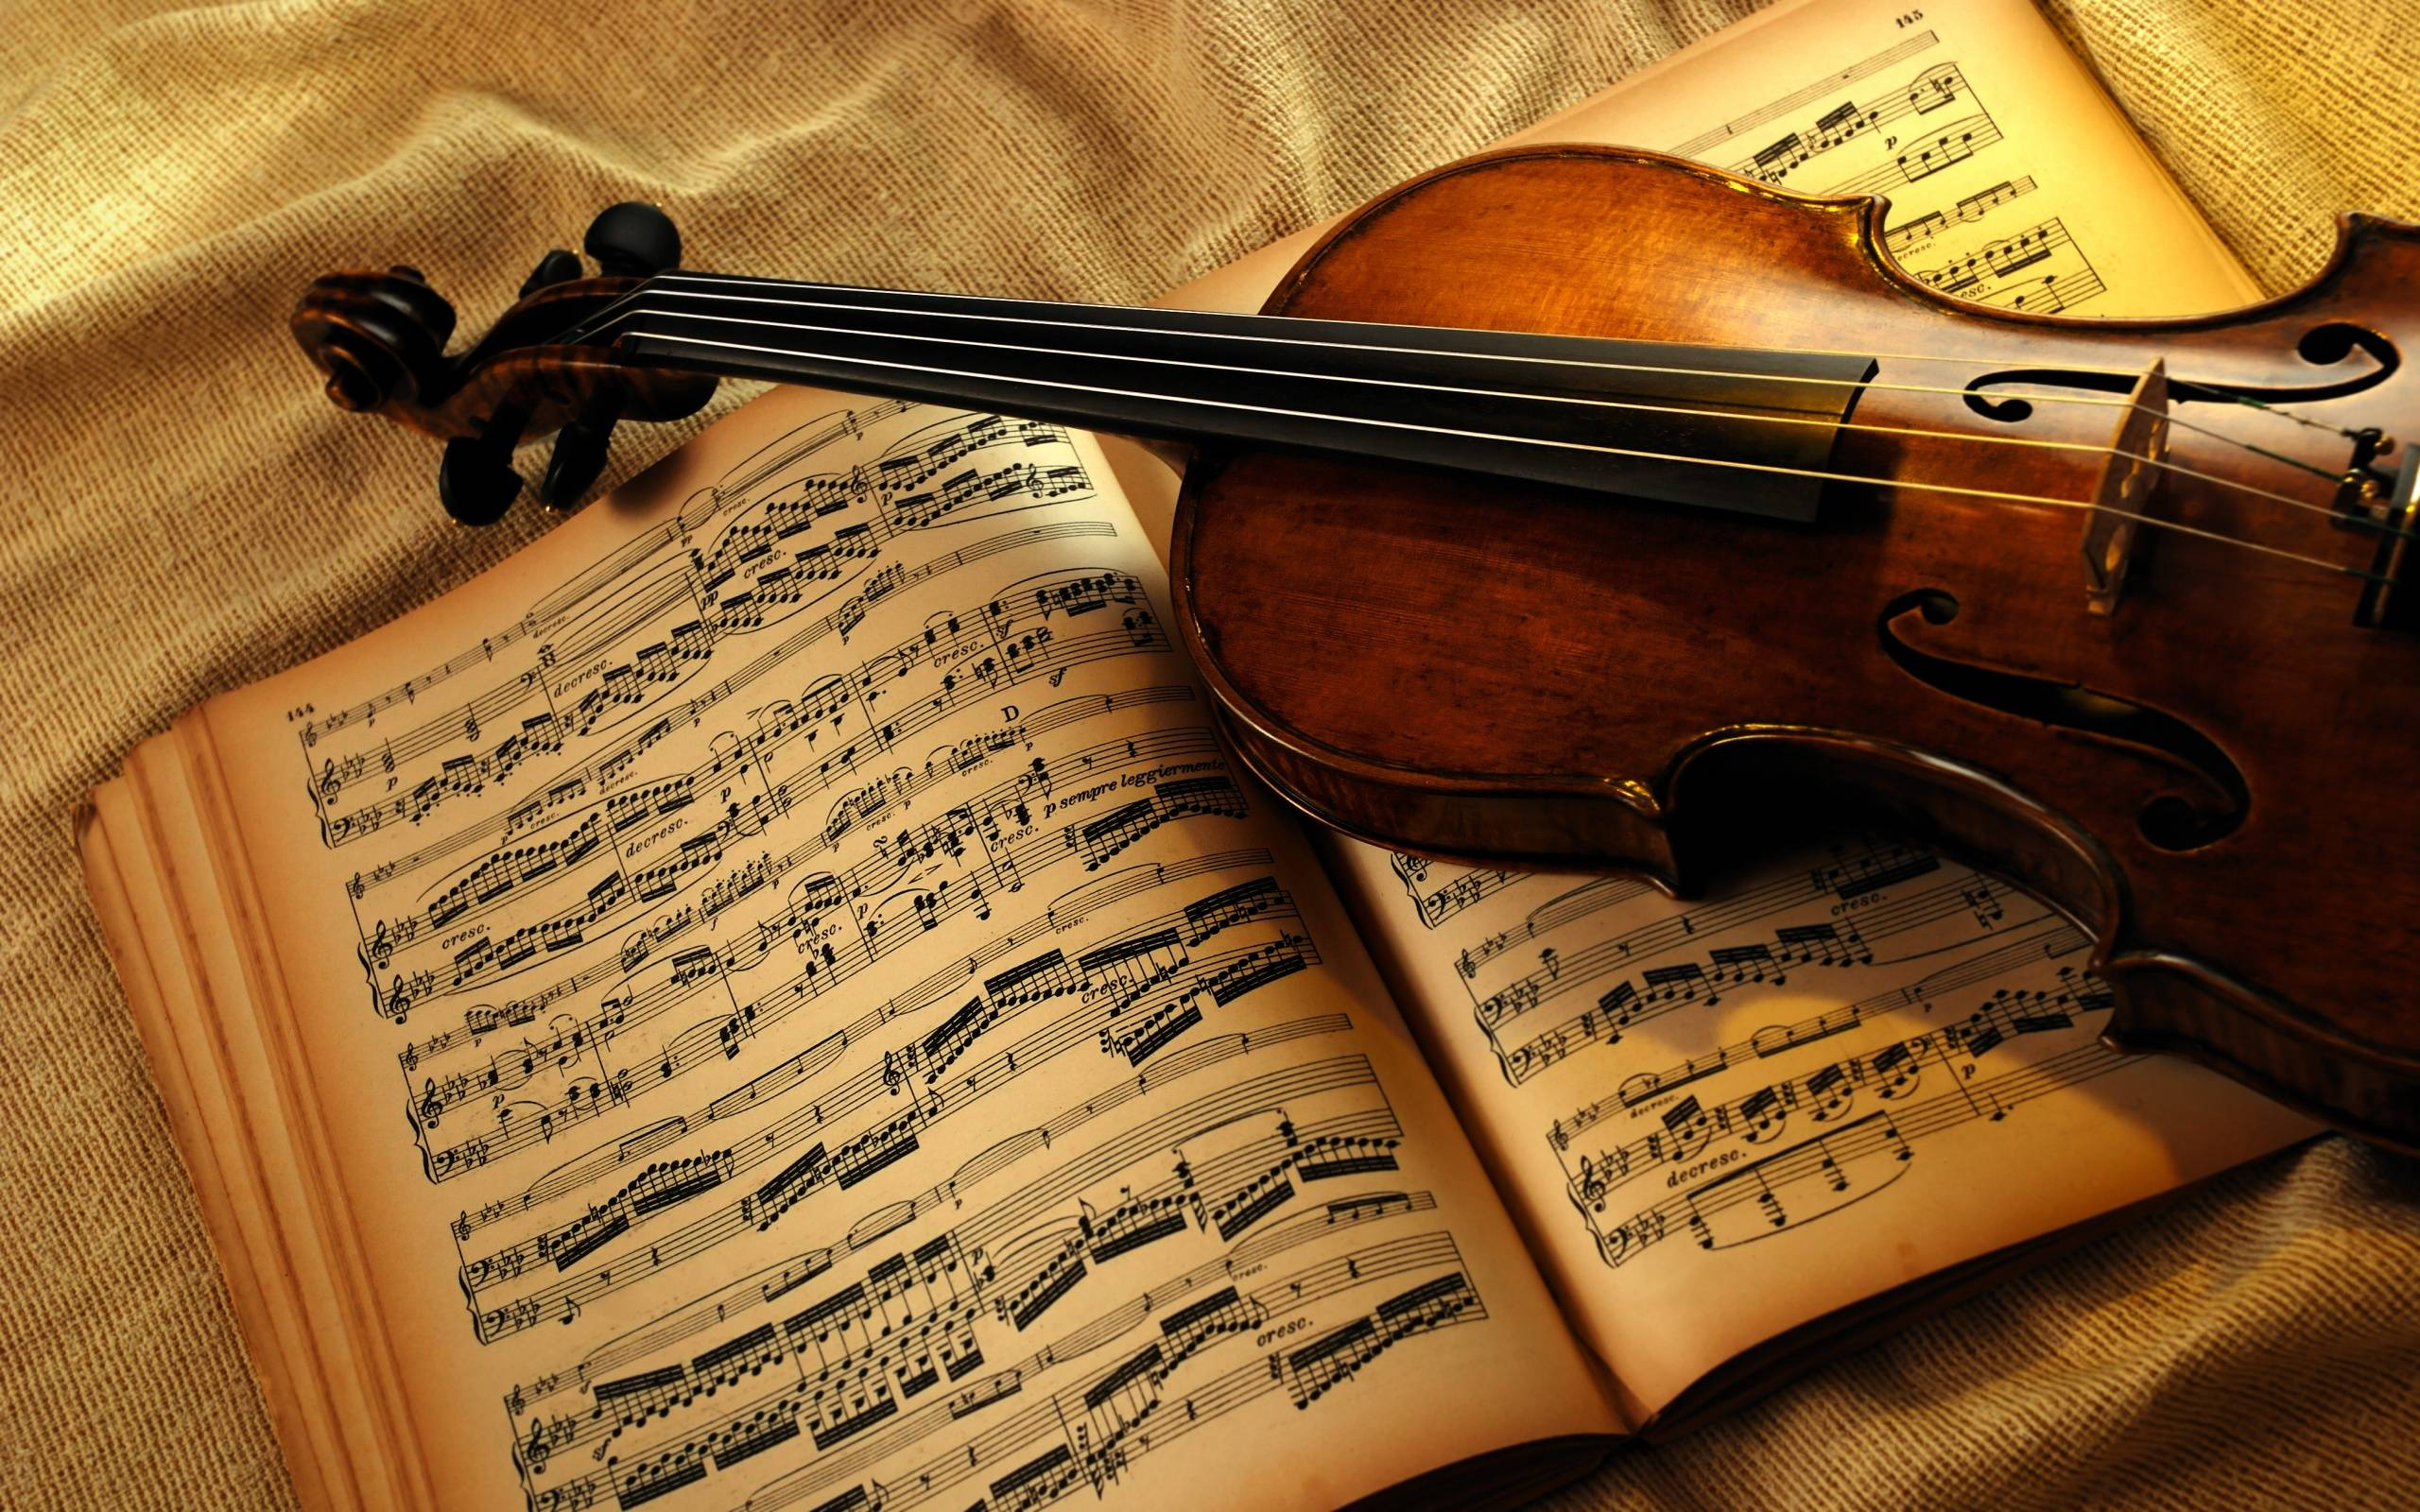 Violin Instrument Music Wallpaper HD #6428 Wallpaper | Wallpaper ...